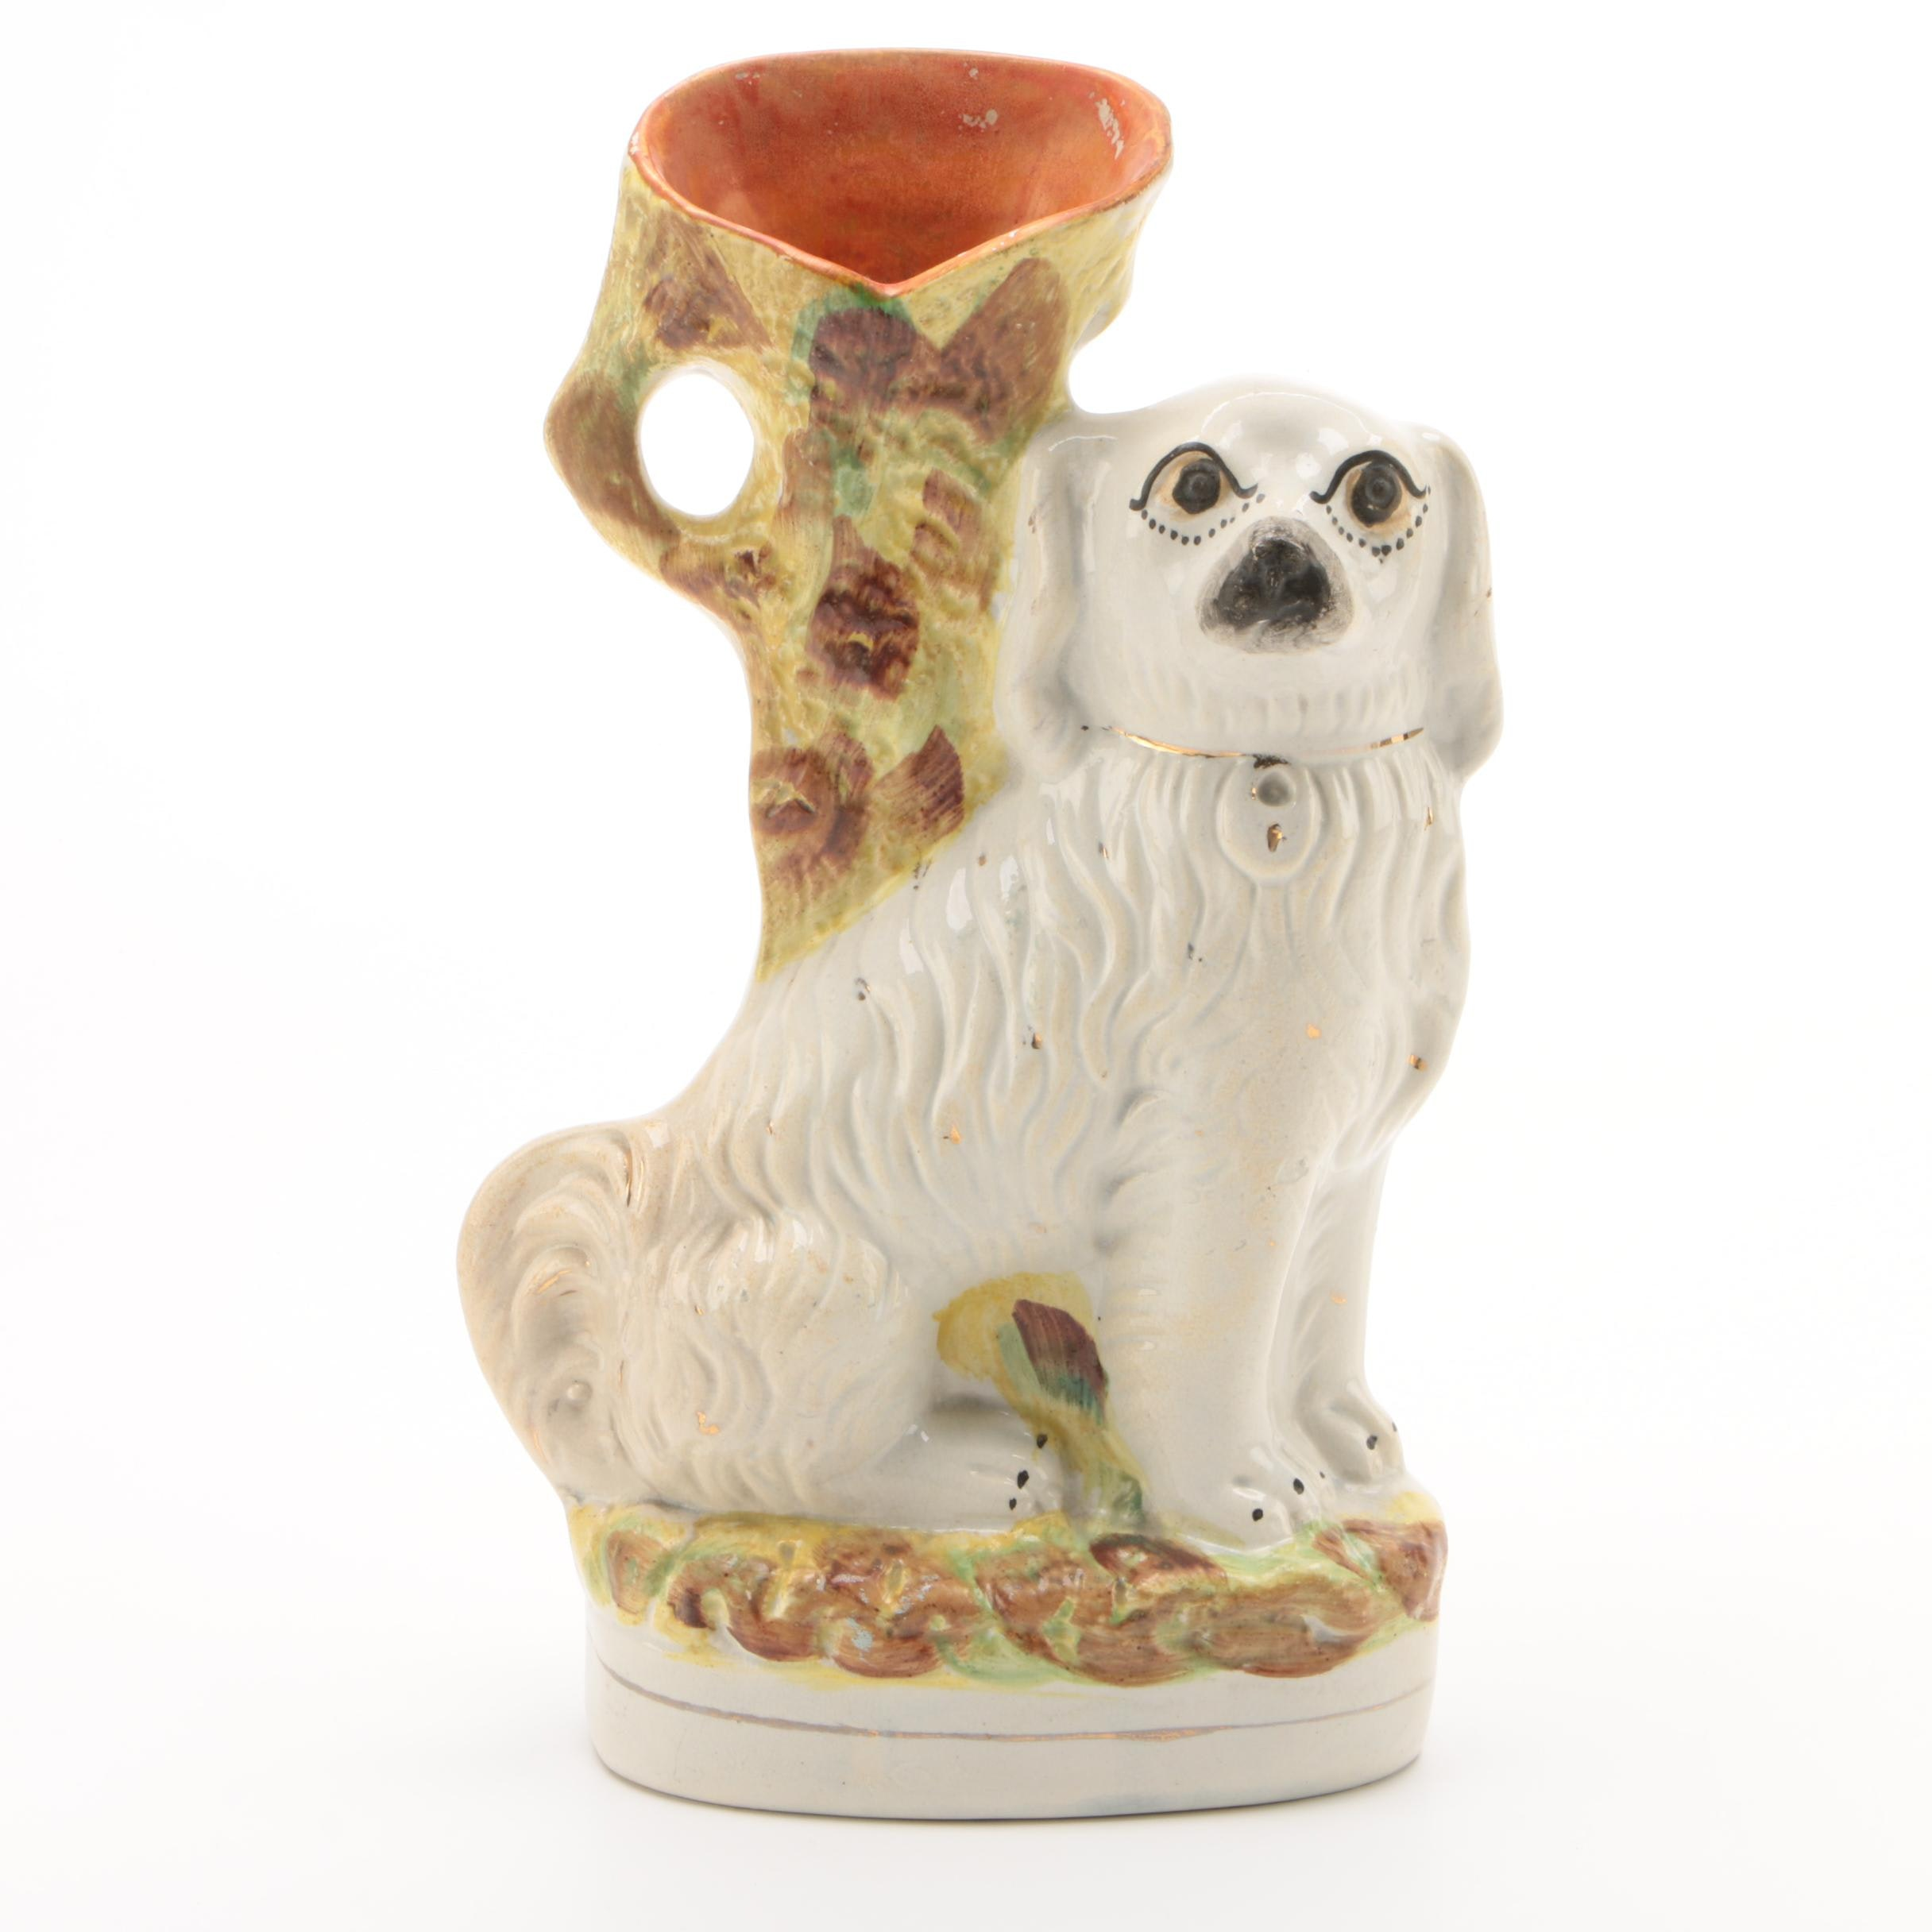 Staffordshire Style Earthenware Spaniel Vase, Early 20th Century